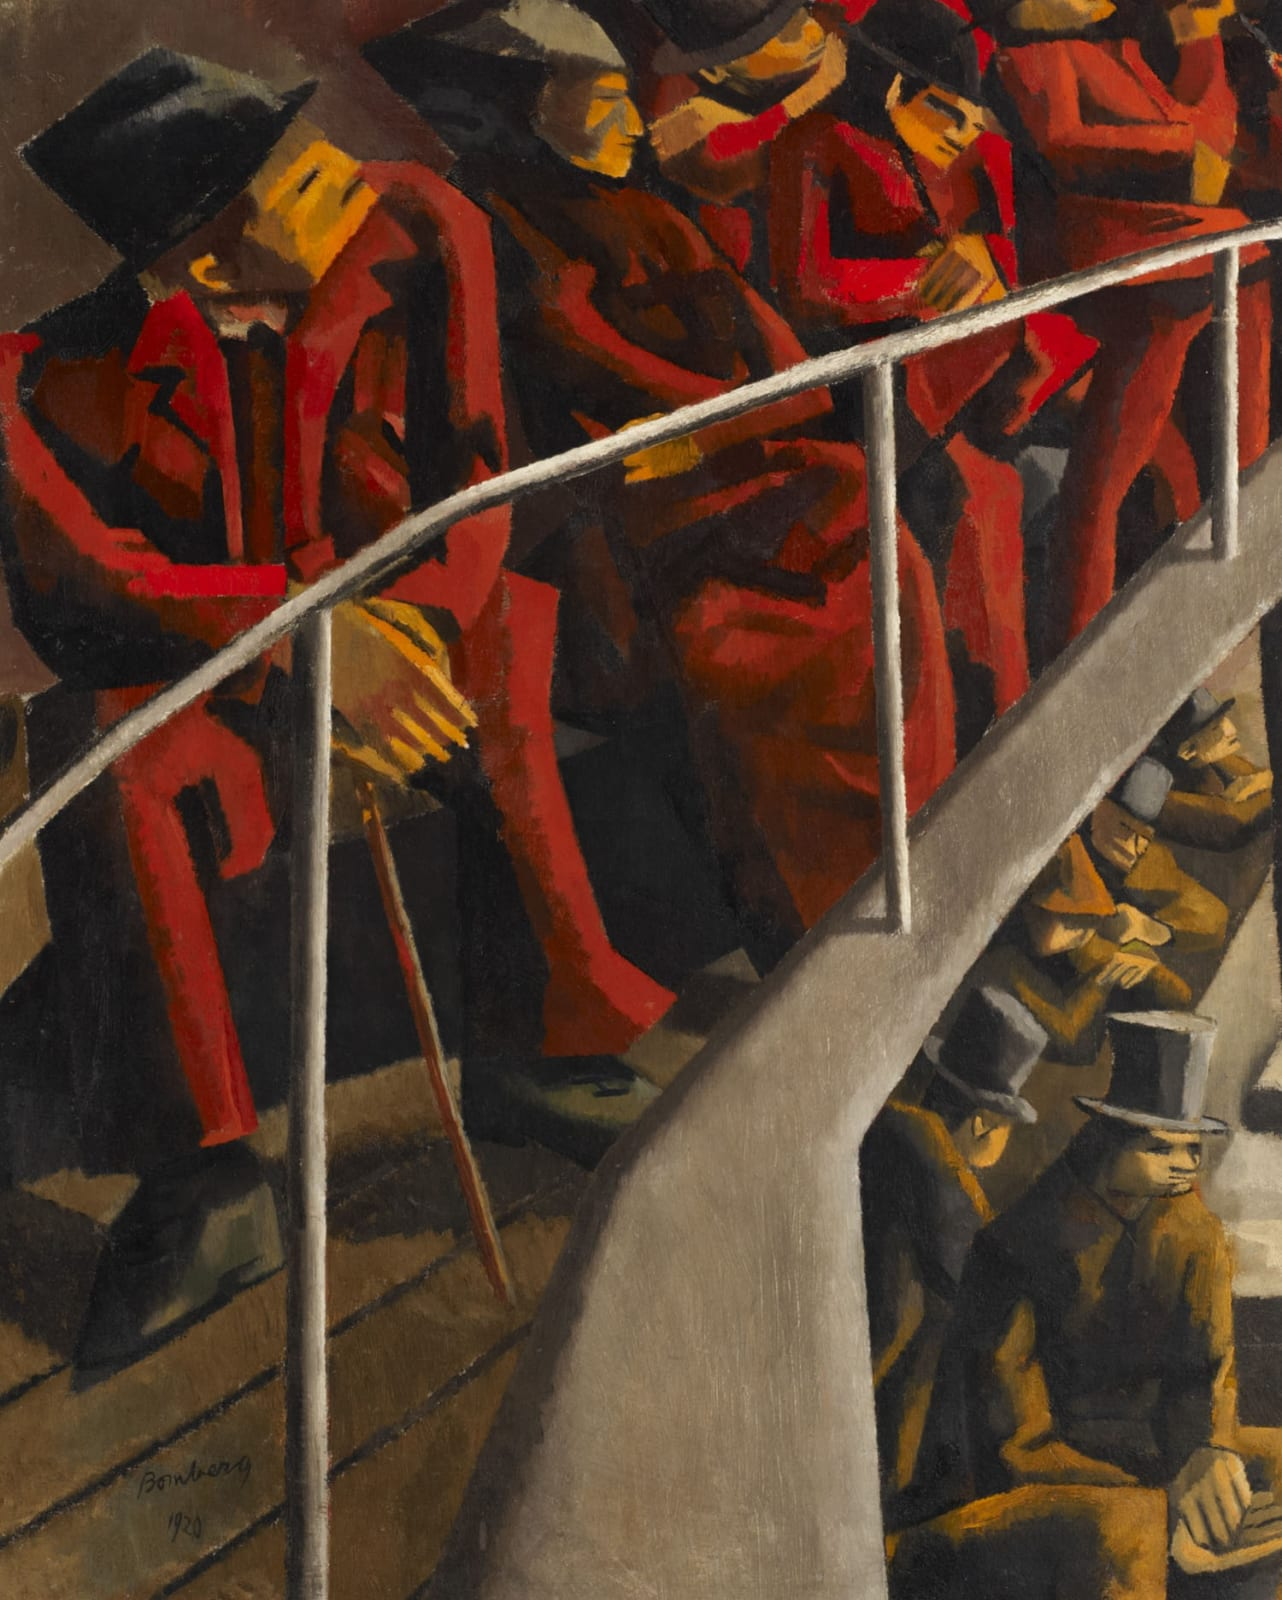 David Bomberg (1890-1957) Ghetto Theatre 1920 Oil on canvas 74.4 x 62 cm Ben Uri Collection © David Bomberg estate To see and discover more about this artist click here